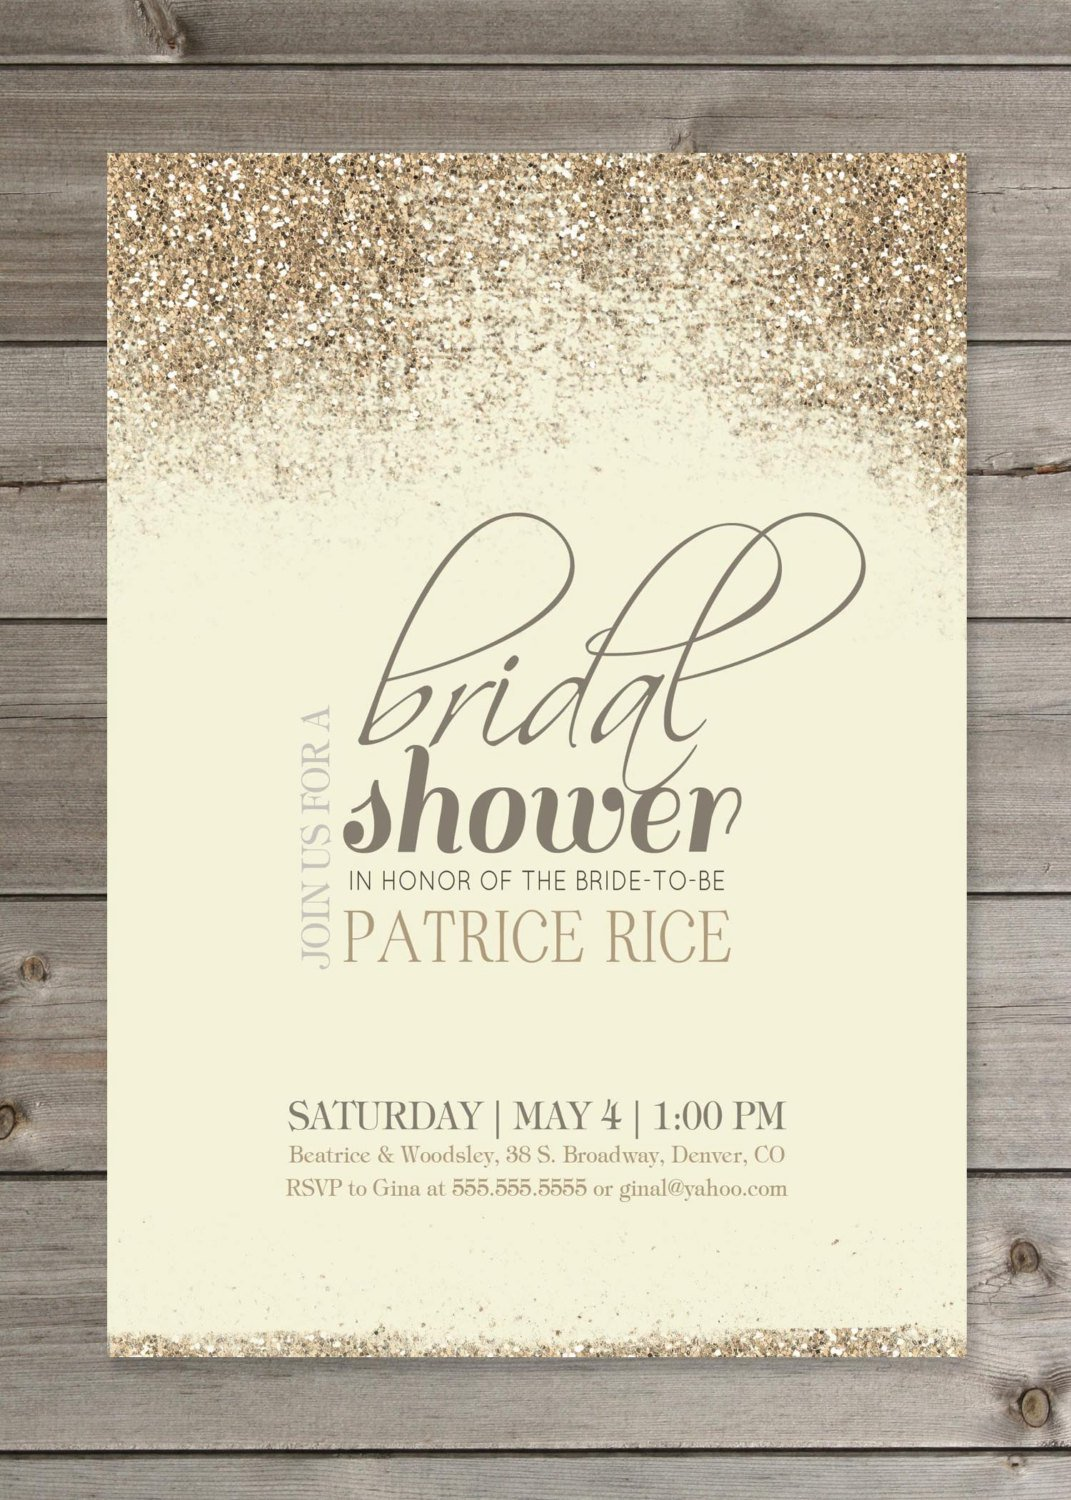 39;s Bridal Shower Invitations Etsy